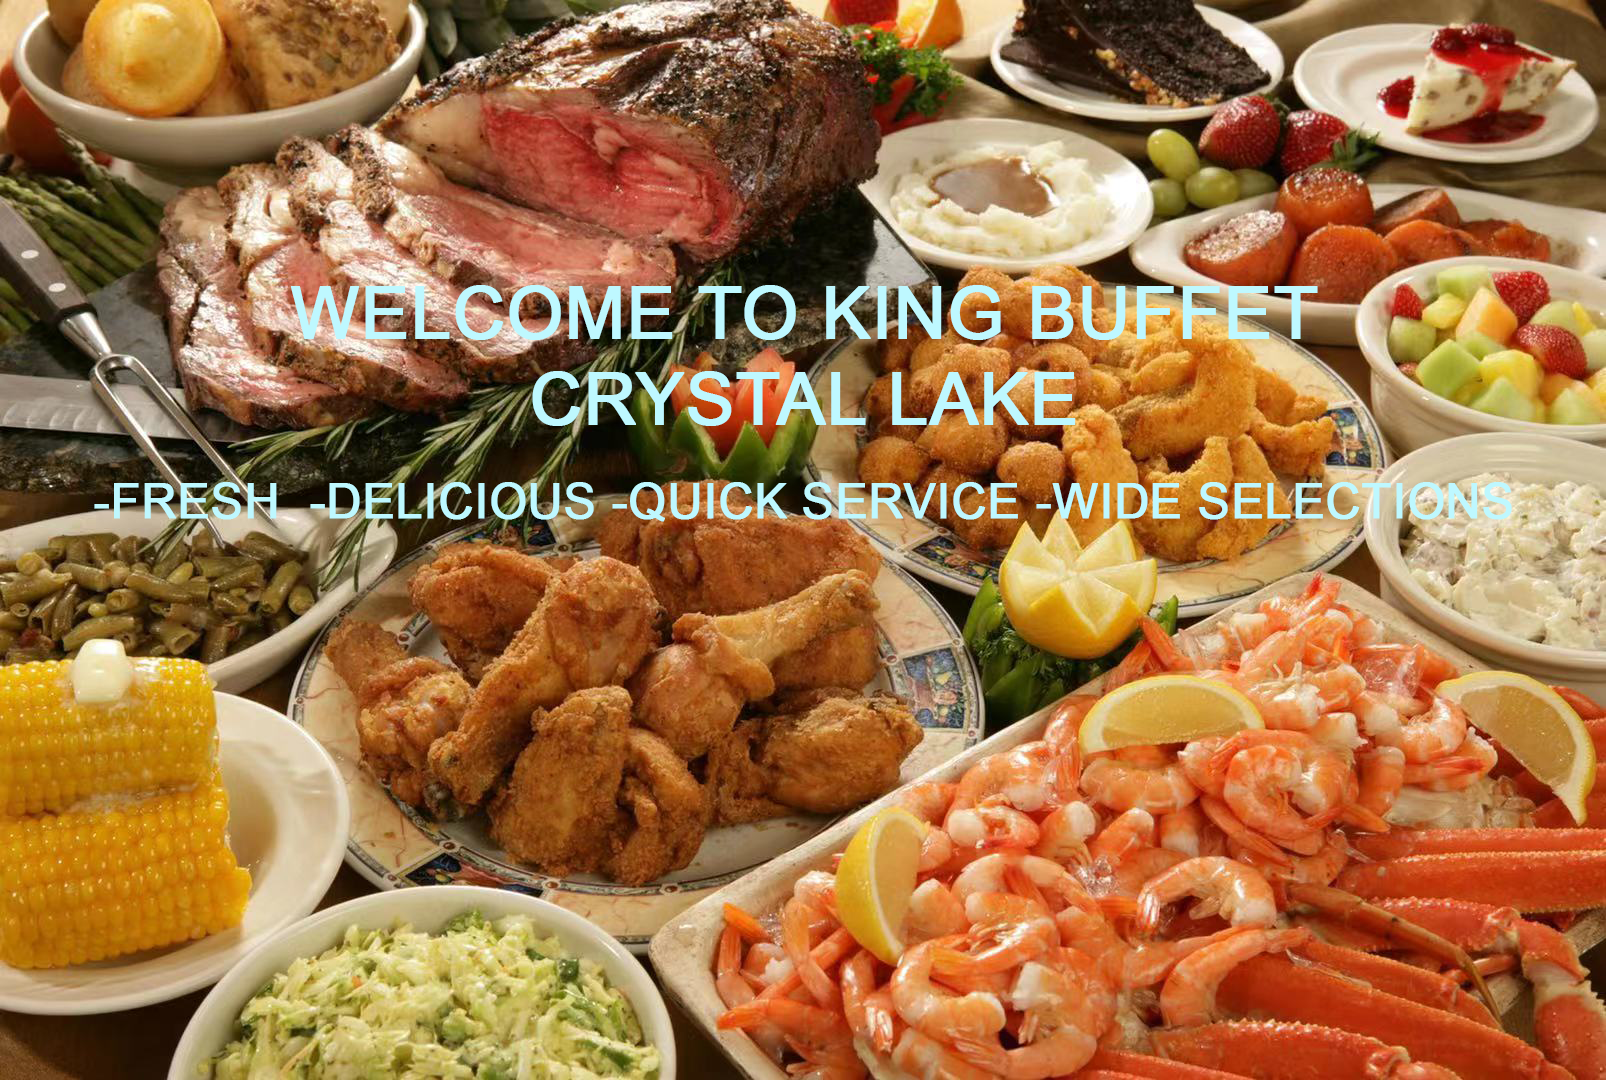 KING BUFFET CRYSTAL LAKE